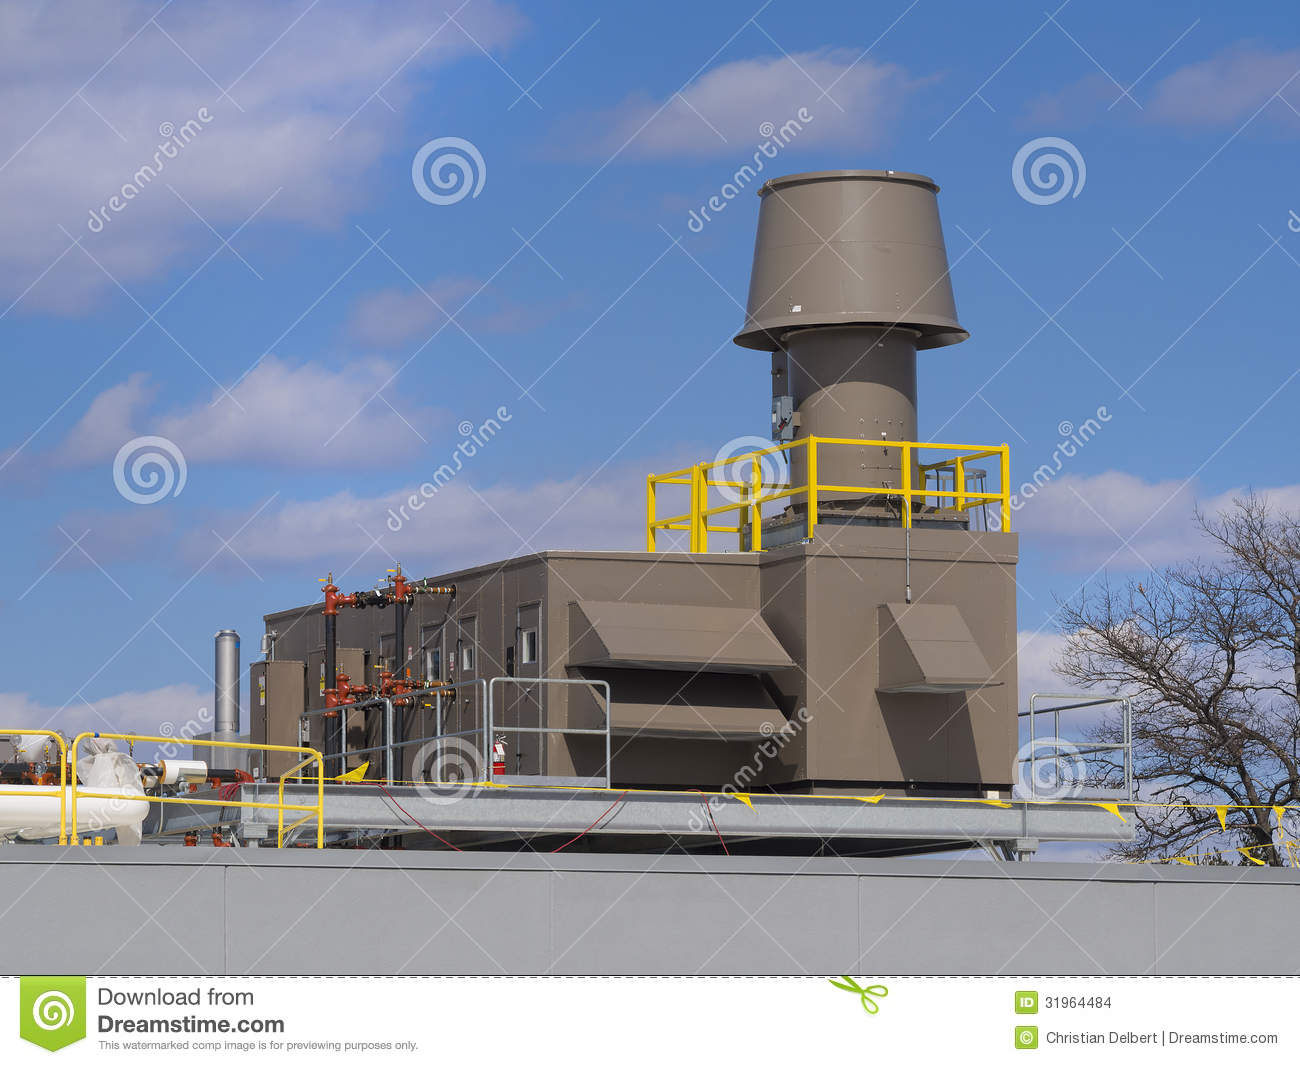 Industrial Building Ventiltors : Heating and cooling ventilation system stock images